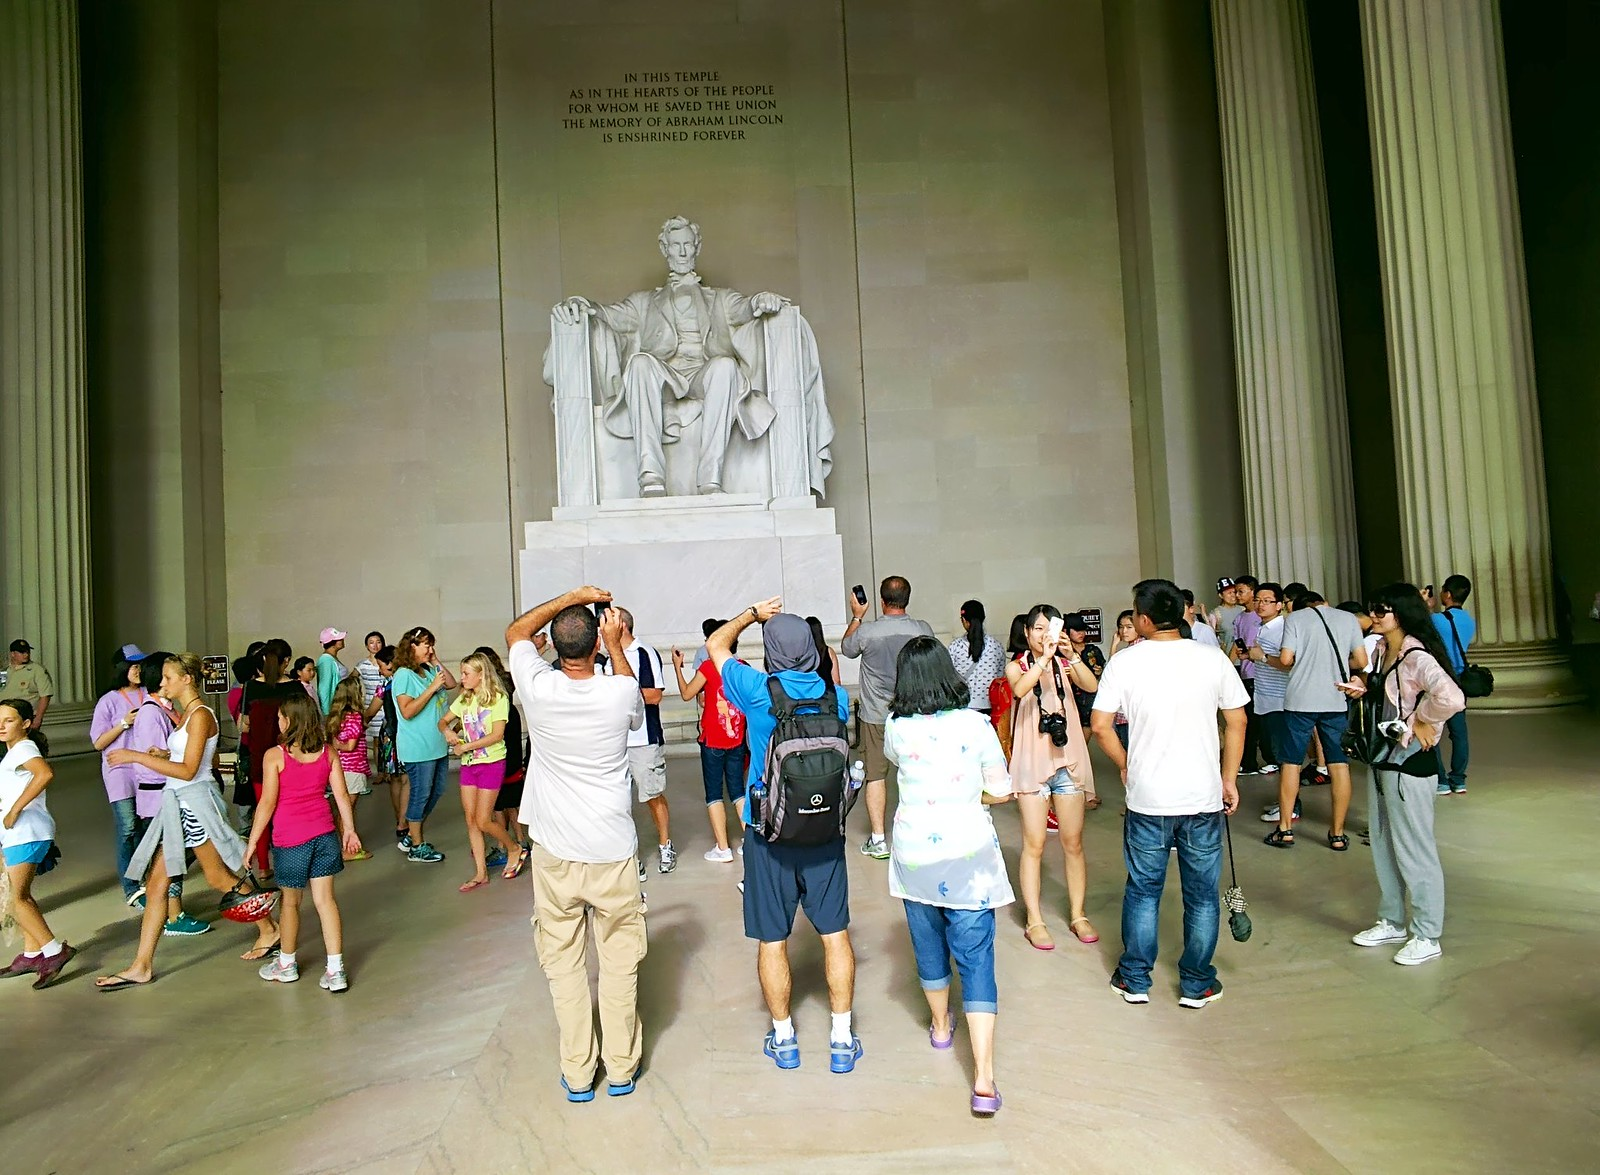 Lincoln Memorial Throughglass 27267